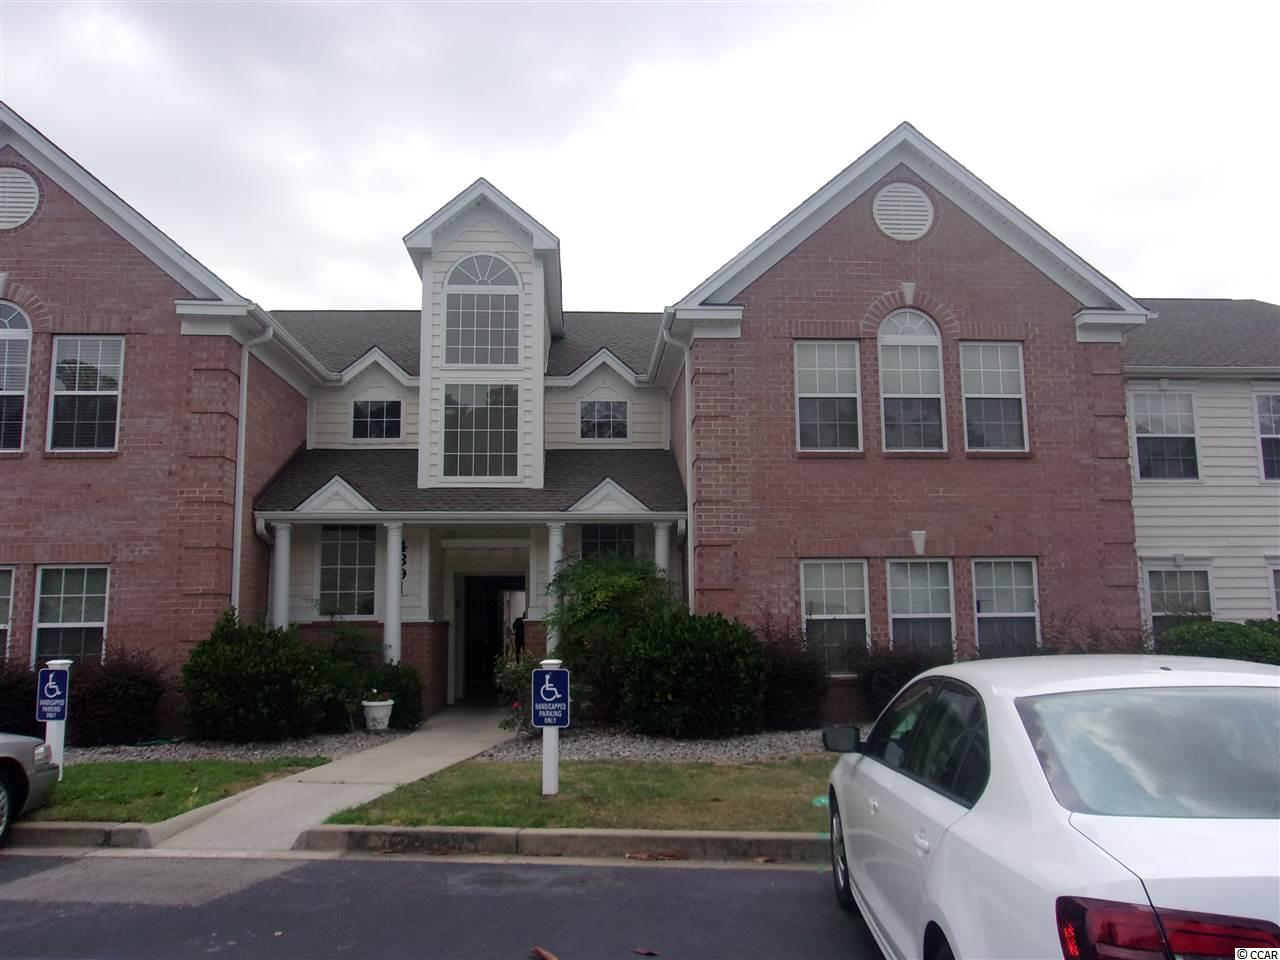 Meticulously maintained first floor condo in sought after Riverwood subdivision. Master bedroom with large walk-in closet, master bath with garden tub and separate shower, large living area with Carolina room on rear. New roof 2017, HVAC system only 5 years young, new hot water heater withing the last 4 years, dishwasher 2 years and washer/dryer 2 years. Gorgeous sitting area in the rear with beautiful pond view. Conveniently located close to beaches, shopping, Tidelands Hospital, Murrells Inlet Marsh Walk, restaurants, Brookgreen Gardens and Huntington Beach State Park.